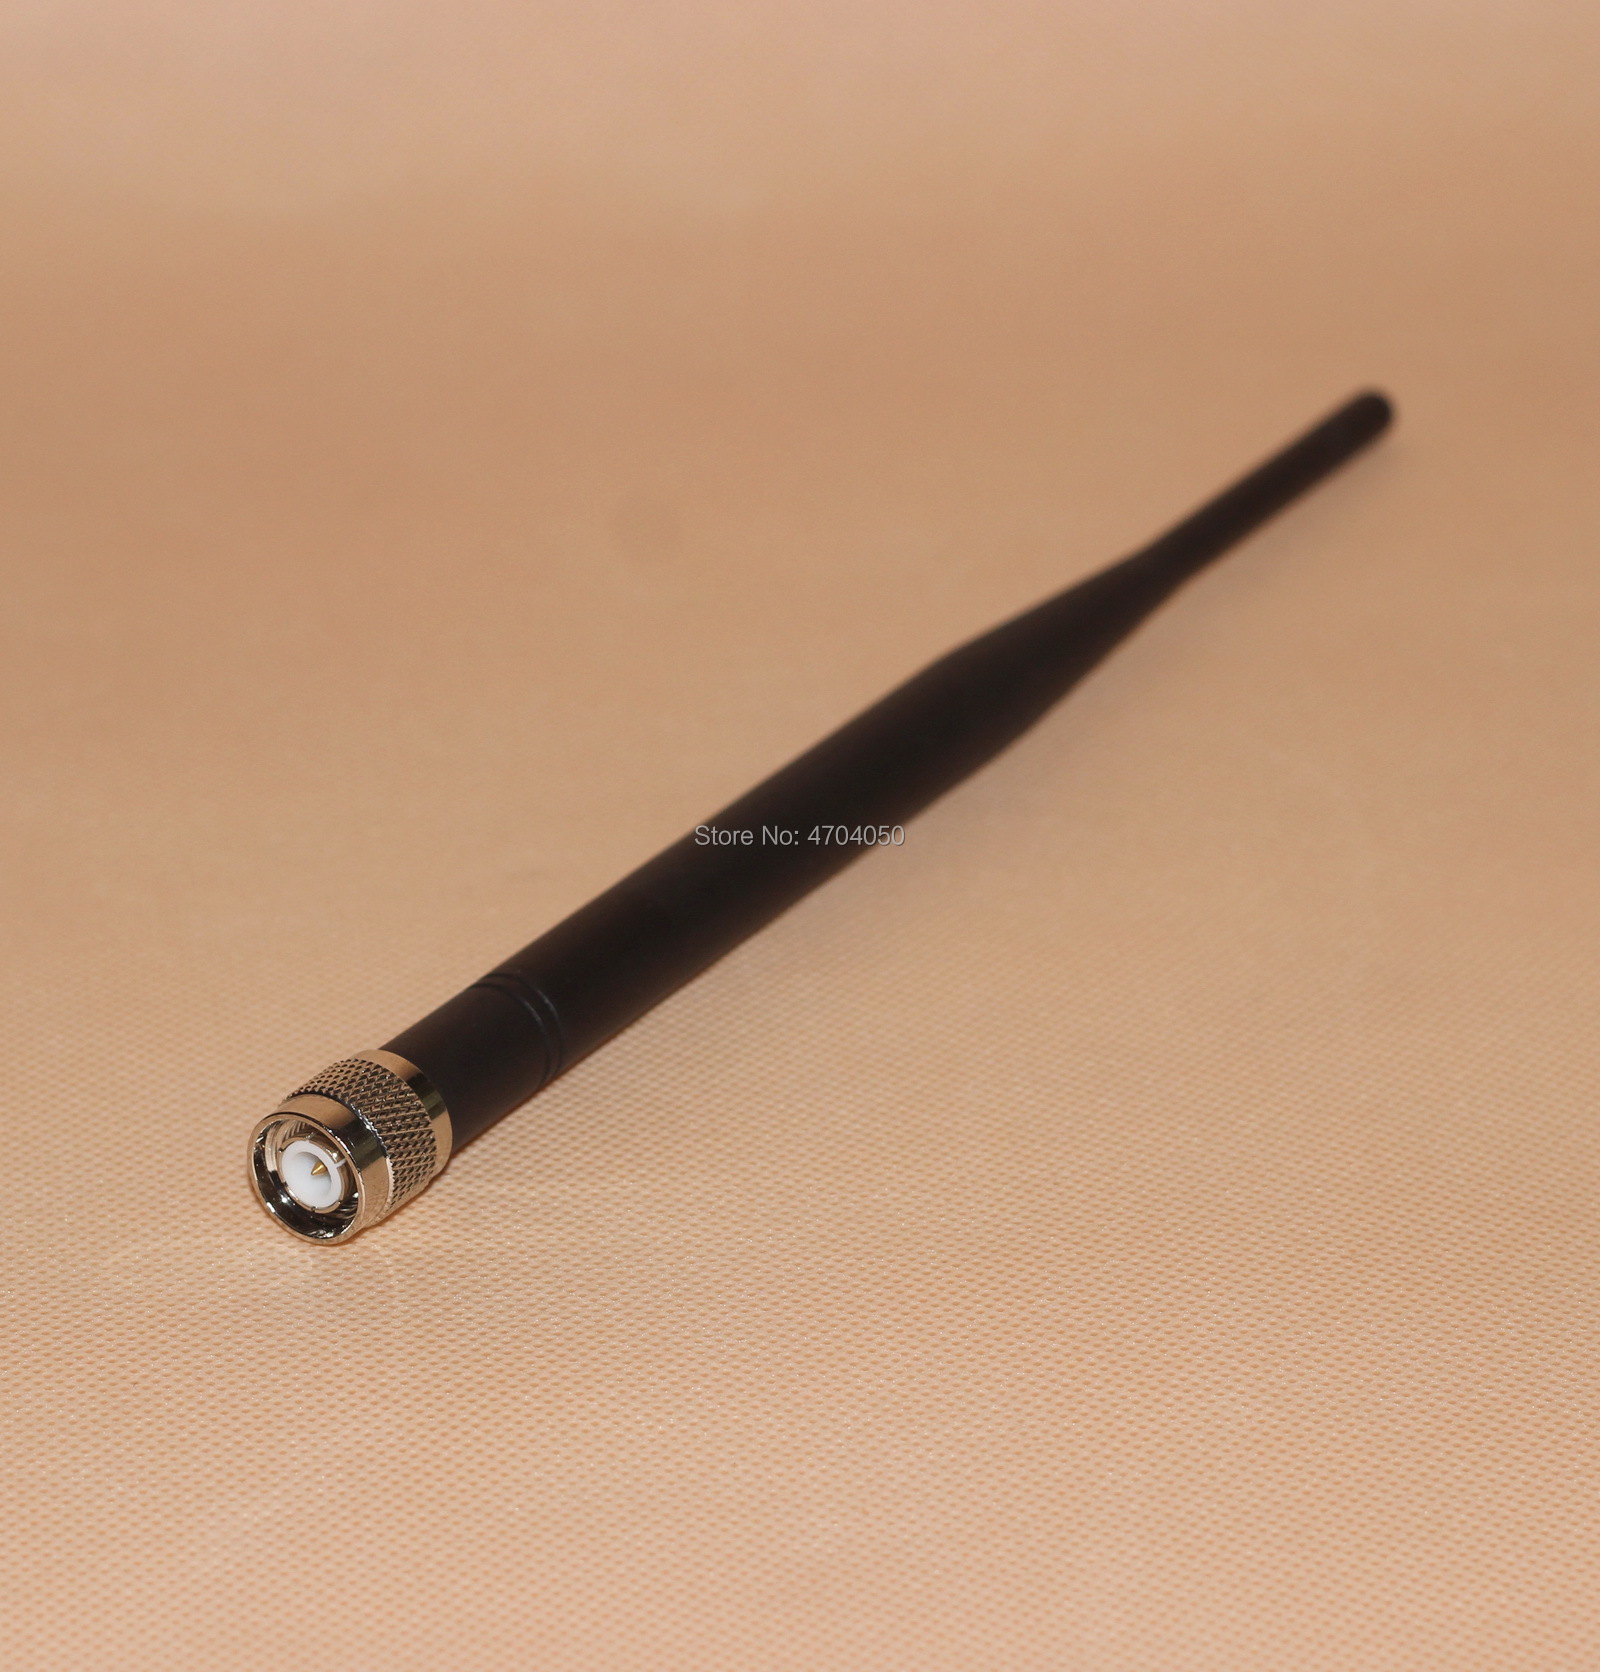 Brand New TNC Whip Antenna 910-920 MHz High frequency for Trimble Topcon Sokkia GPS and other Brand Survey GPS RTK TNC Connector